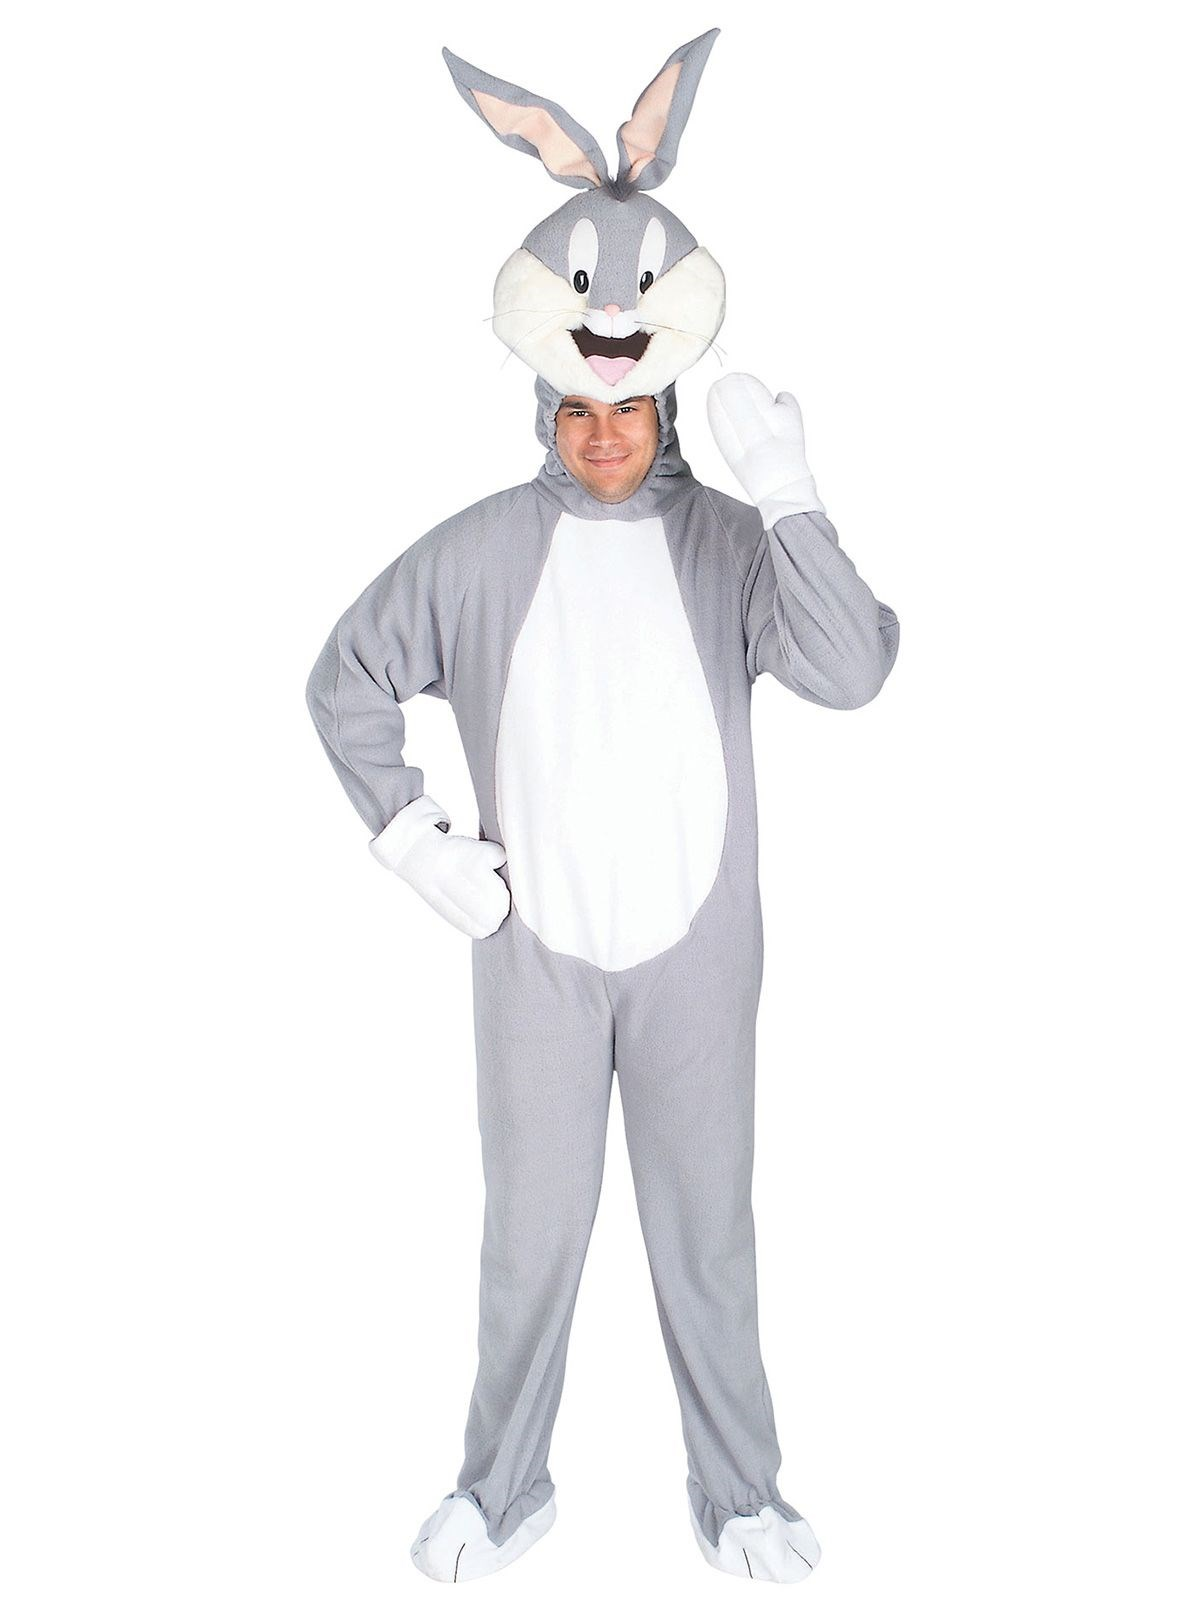 Delightful Bugs Bunny Costume For Adult